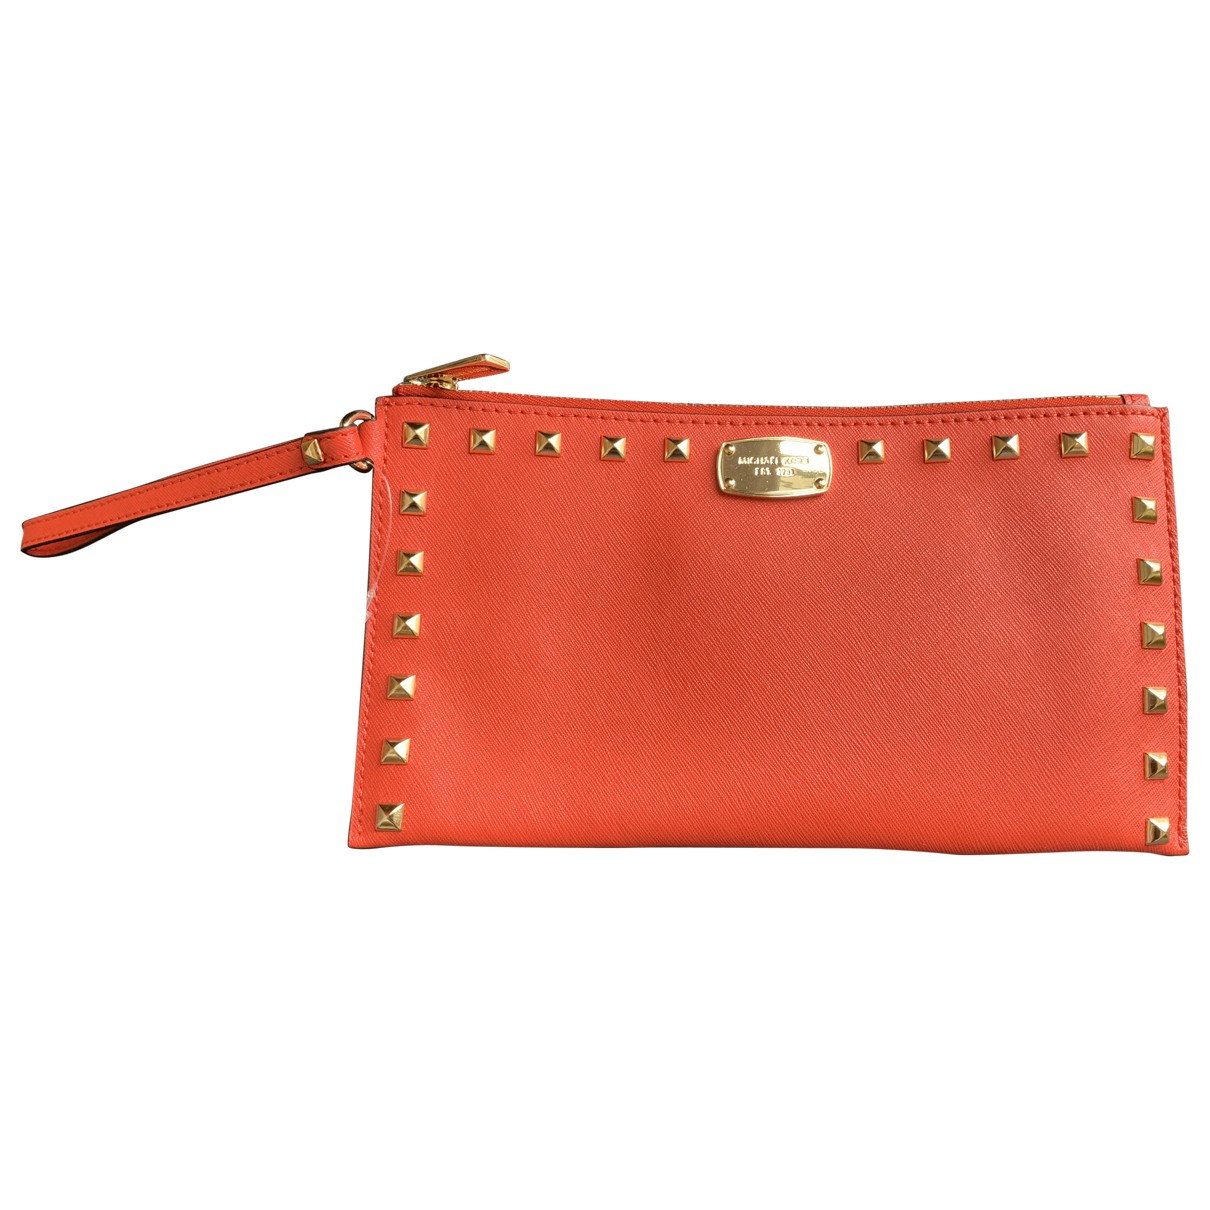 Michael Kors Selma Clutch in  Orange Leder